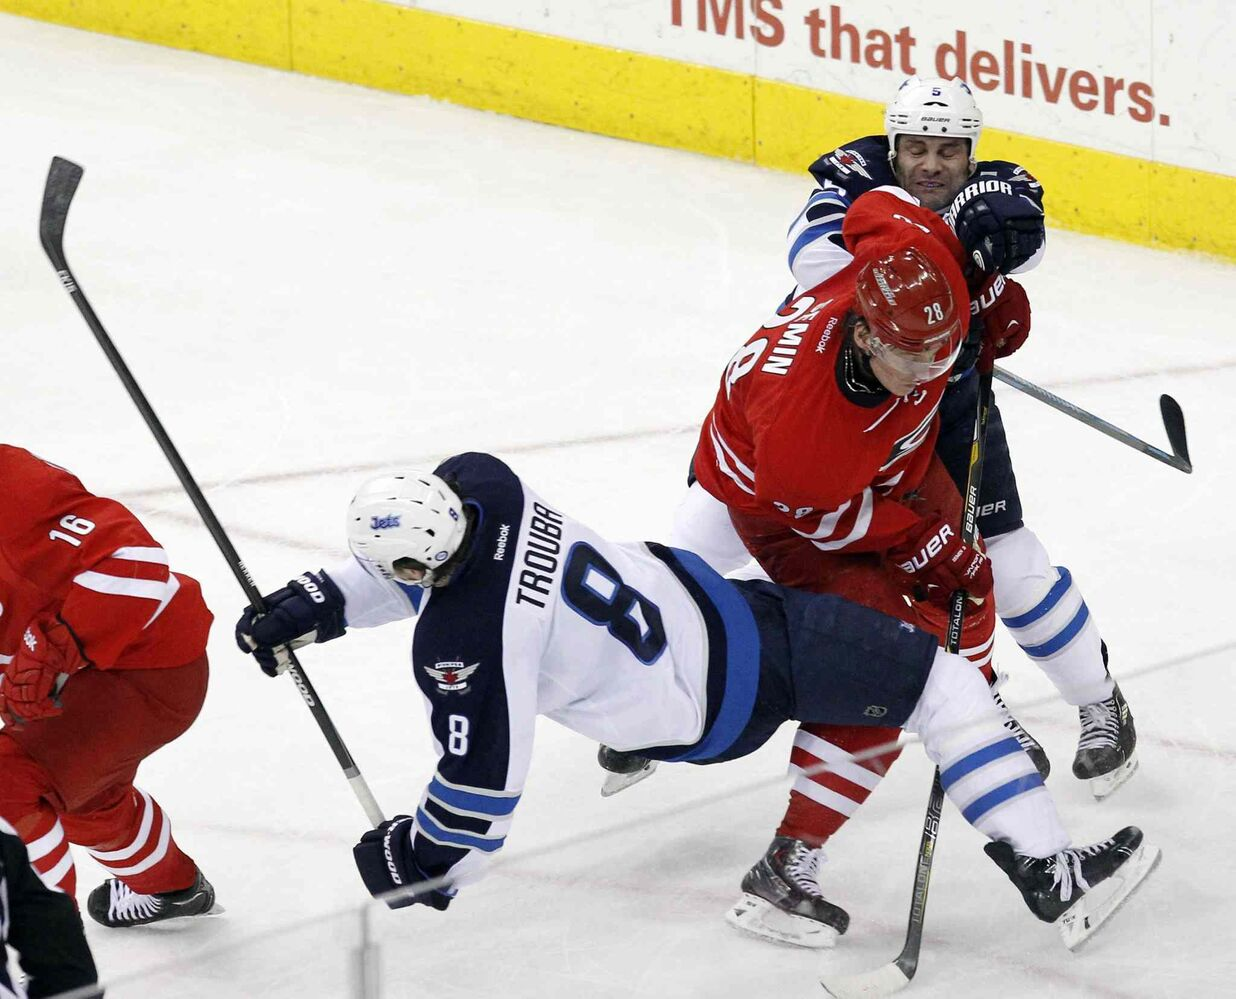 Carolina Hurricanes' Alexander Semin (28) and Winnipeg Jets' Jacob Trouba (8) and Mark Stuart (5) collide during the second period of Tuesday's game. (Chris Seward / Raleigh News & Observer/ Tribune Media MCT)